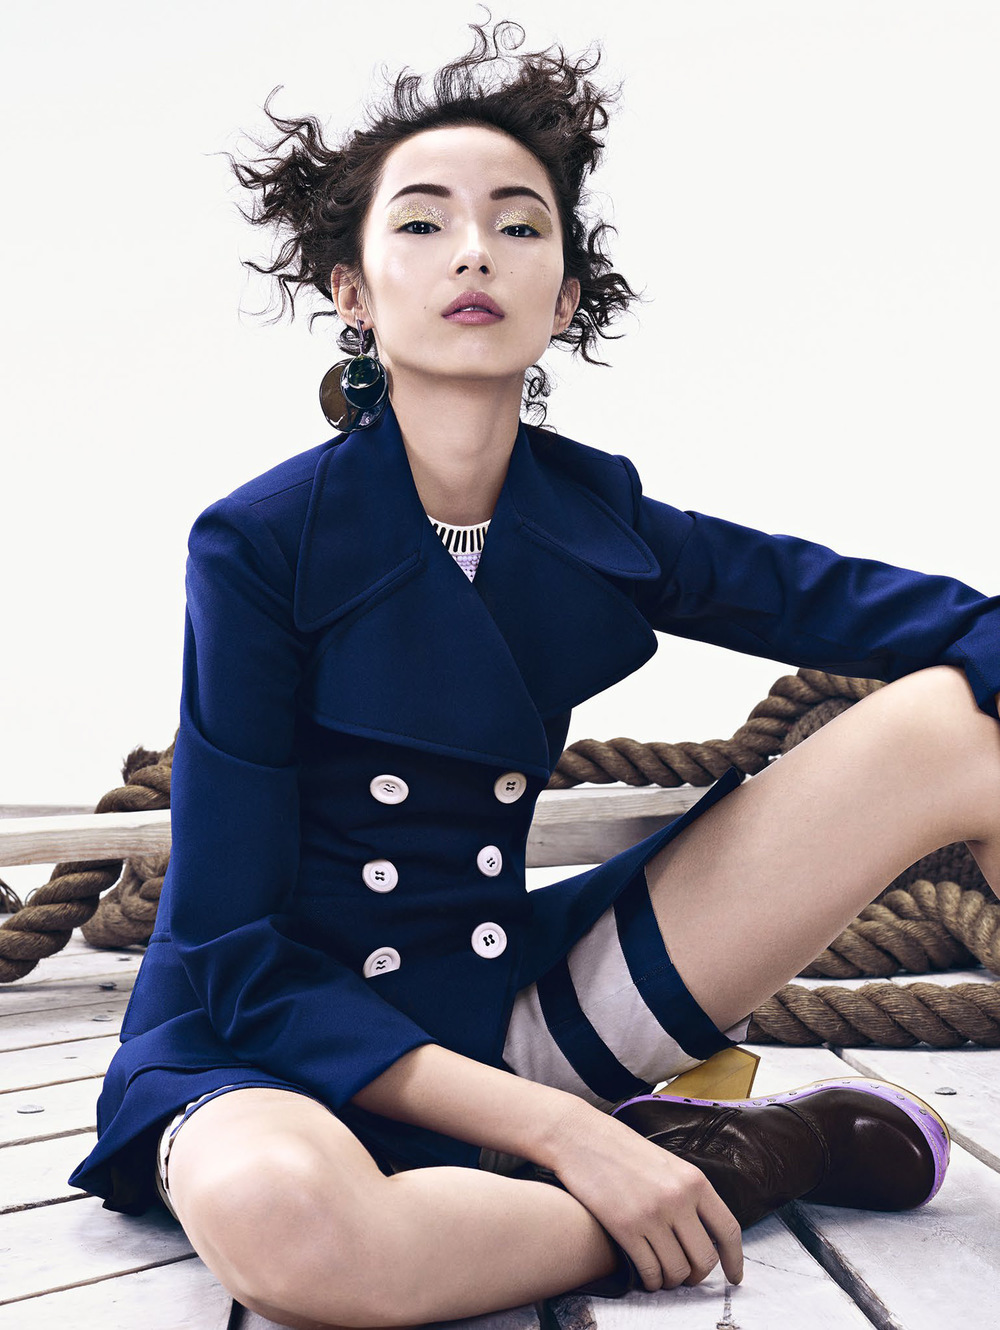 Xiao Wen Ju by Sharif Hamza for Vogue China June 2015